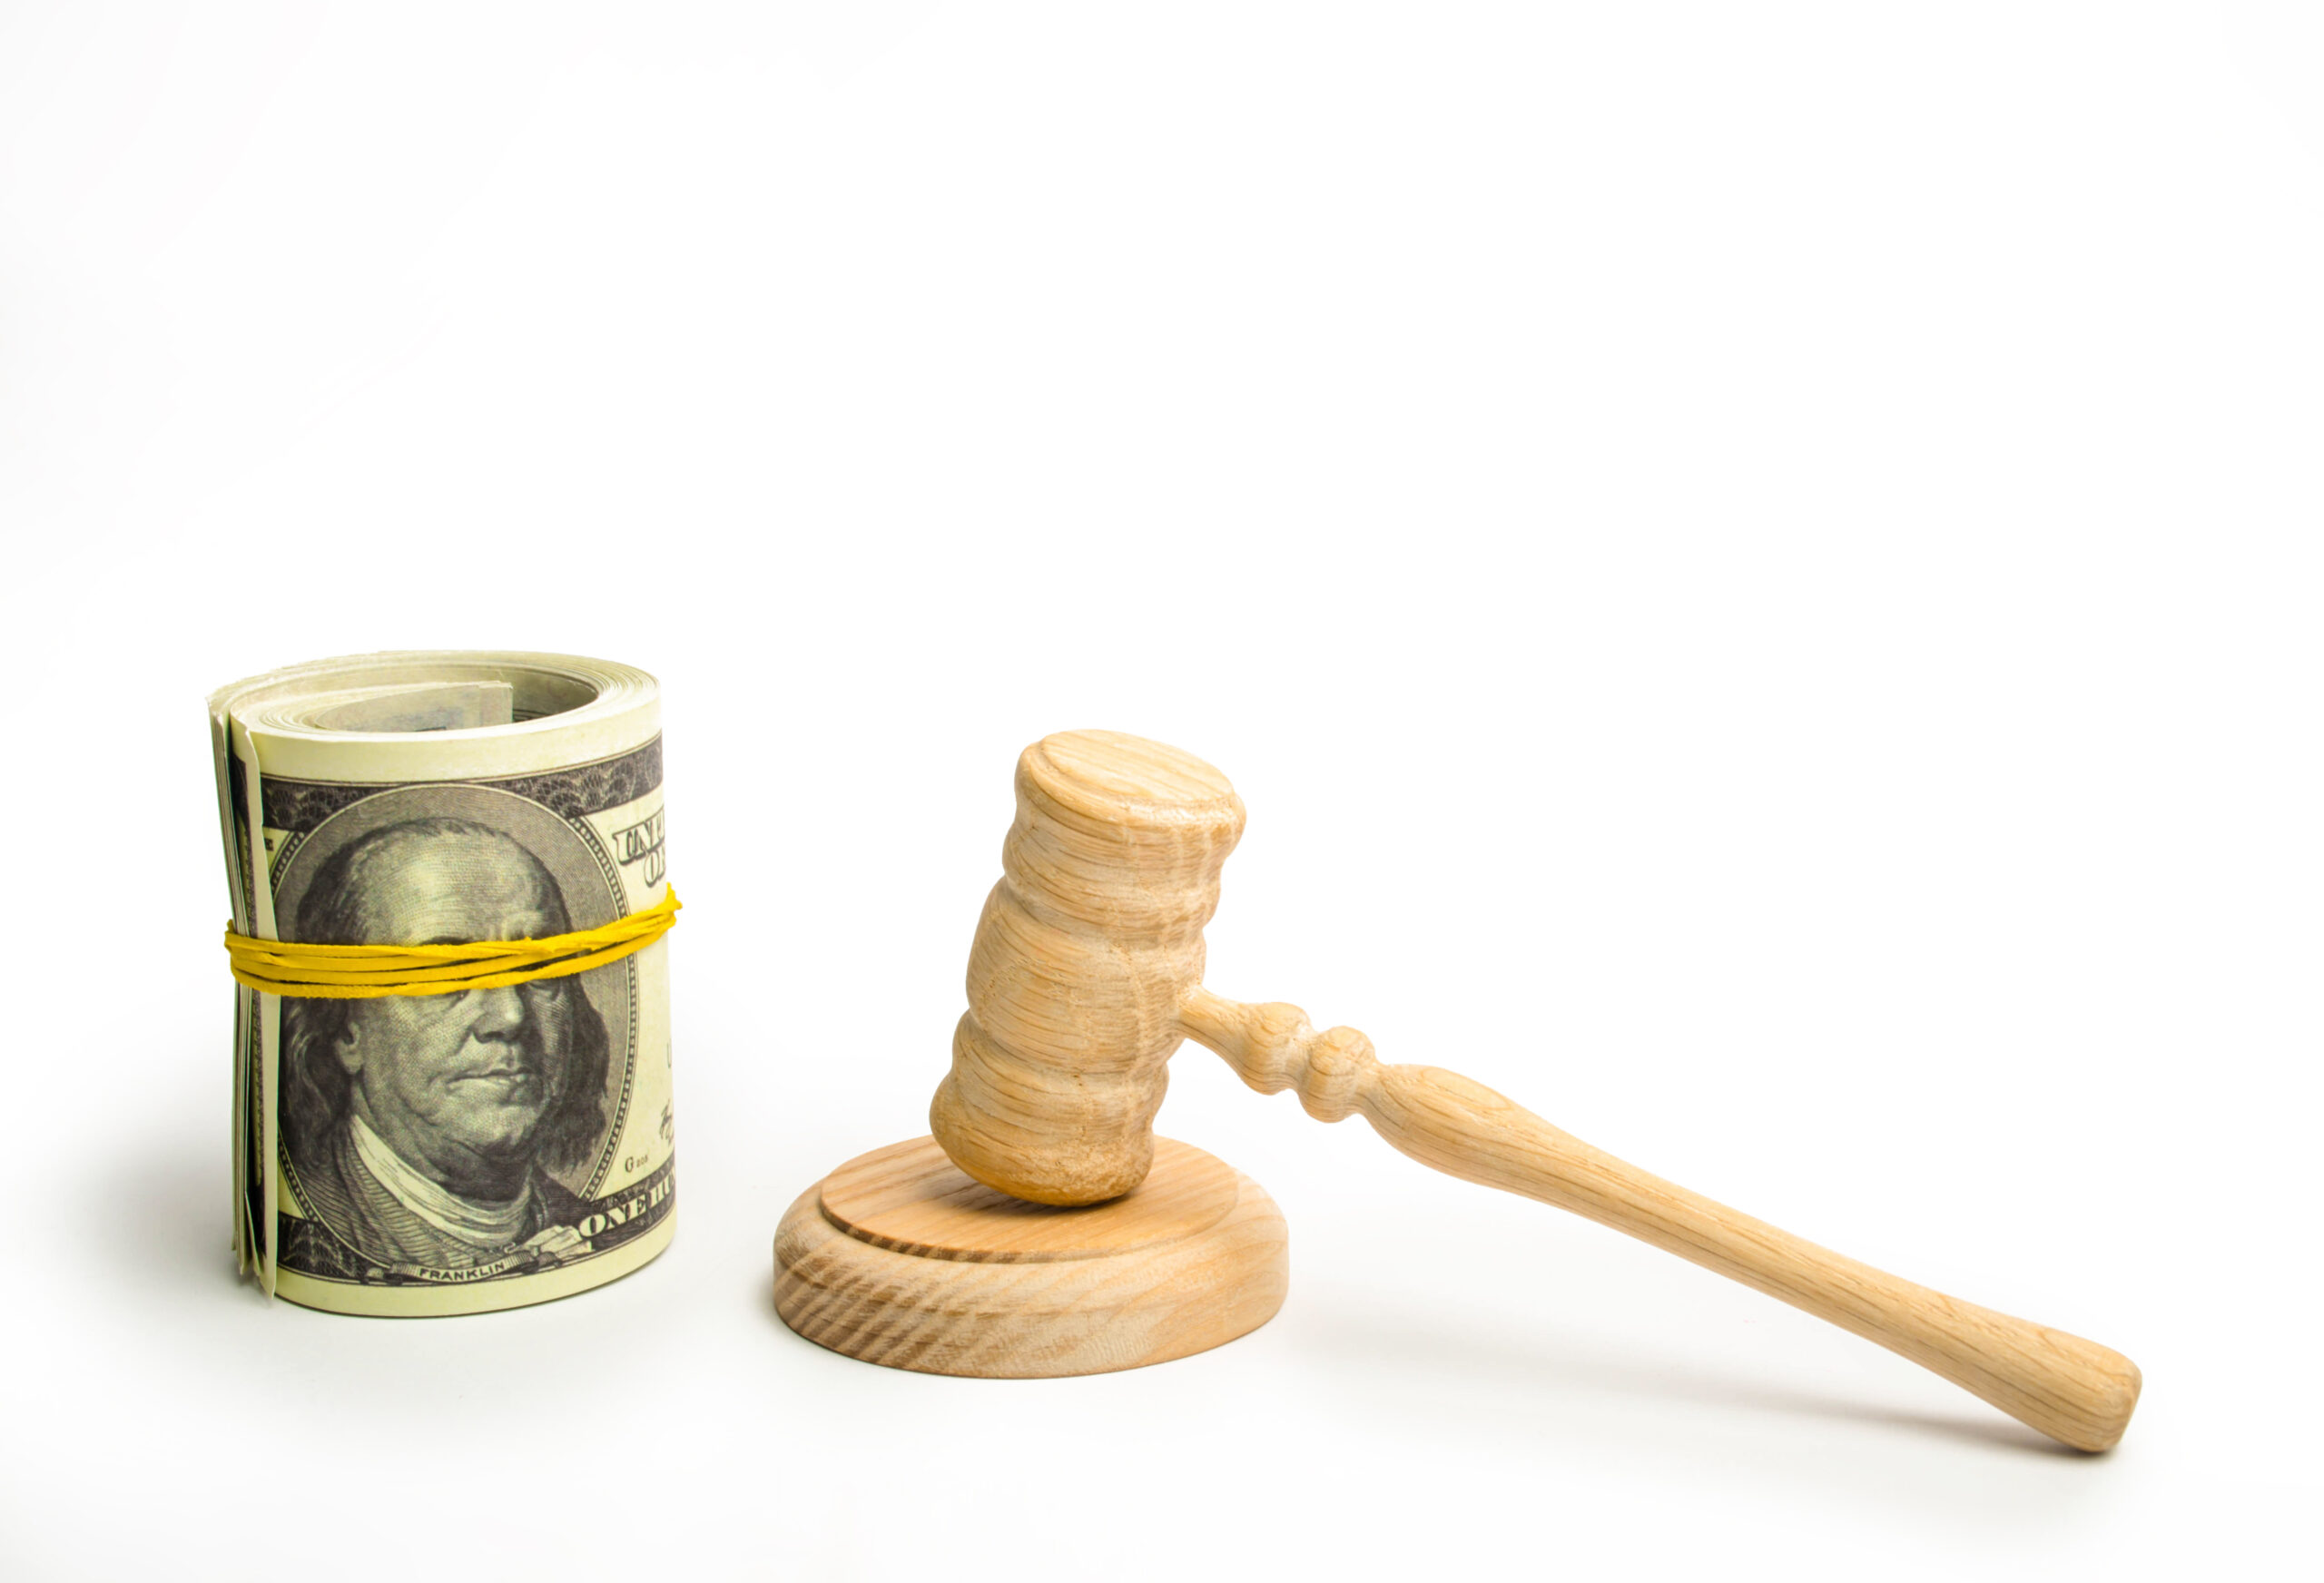 wooden-gavel-next-to-bundle-of-american-hundred-dollar-bills-held-in-roll-by-a-rubber-band